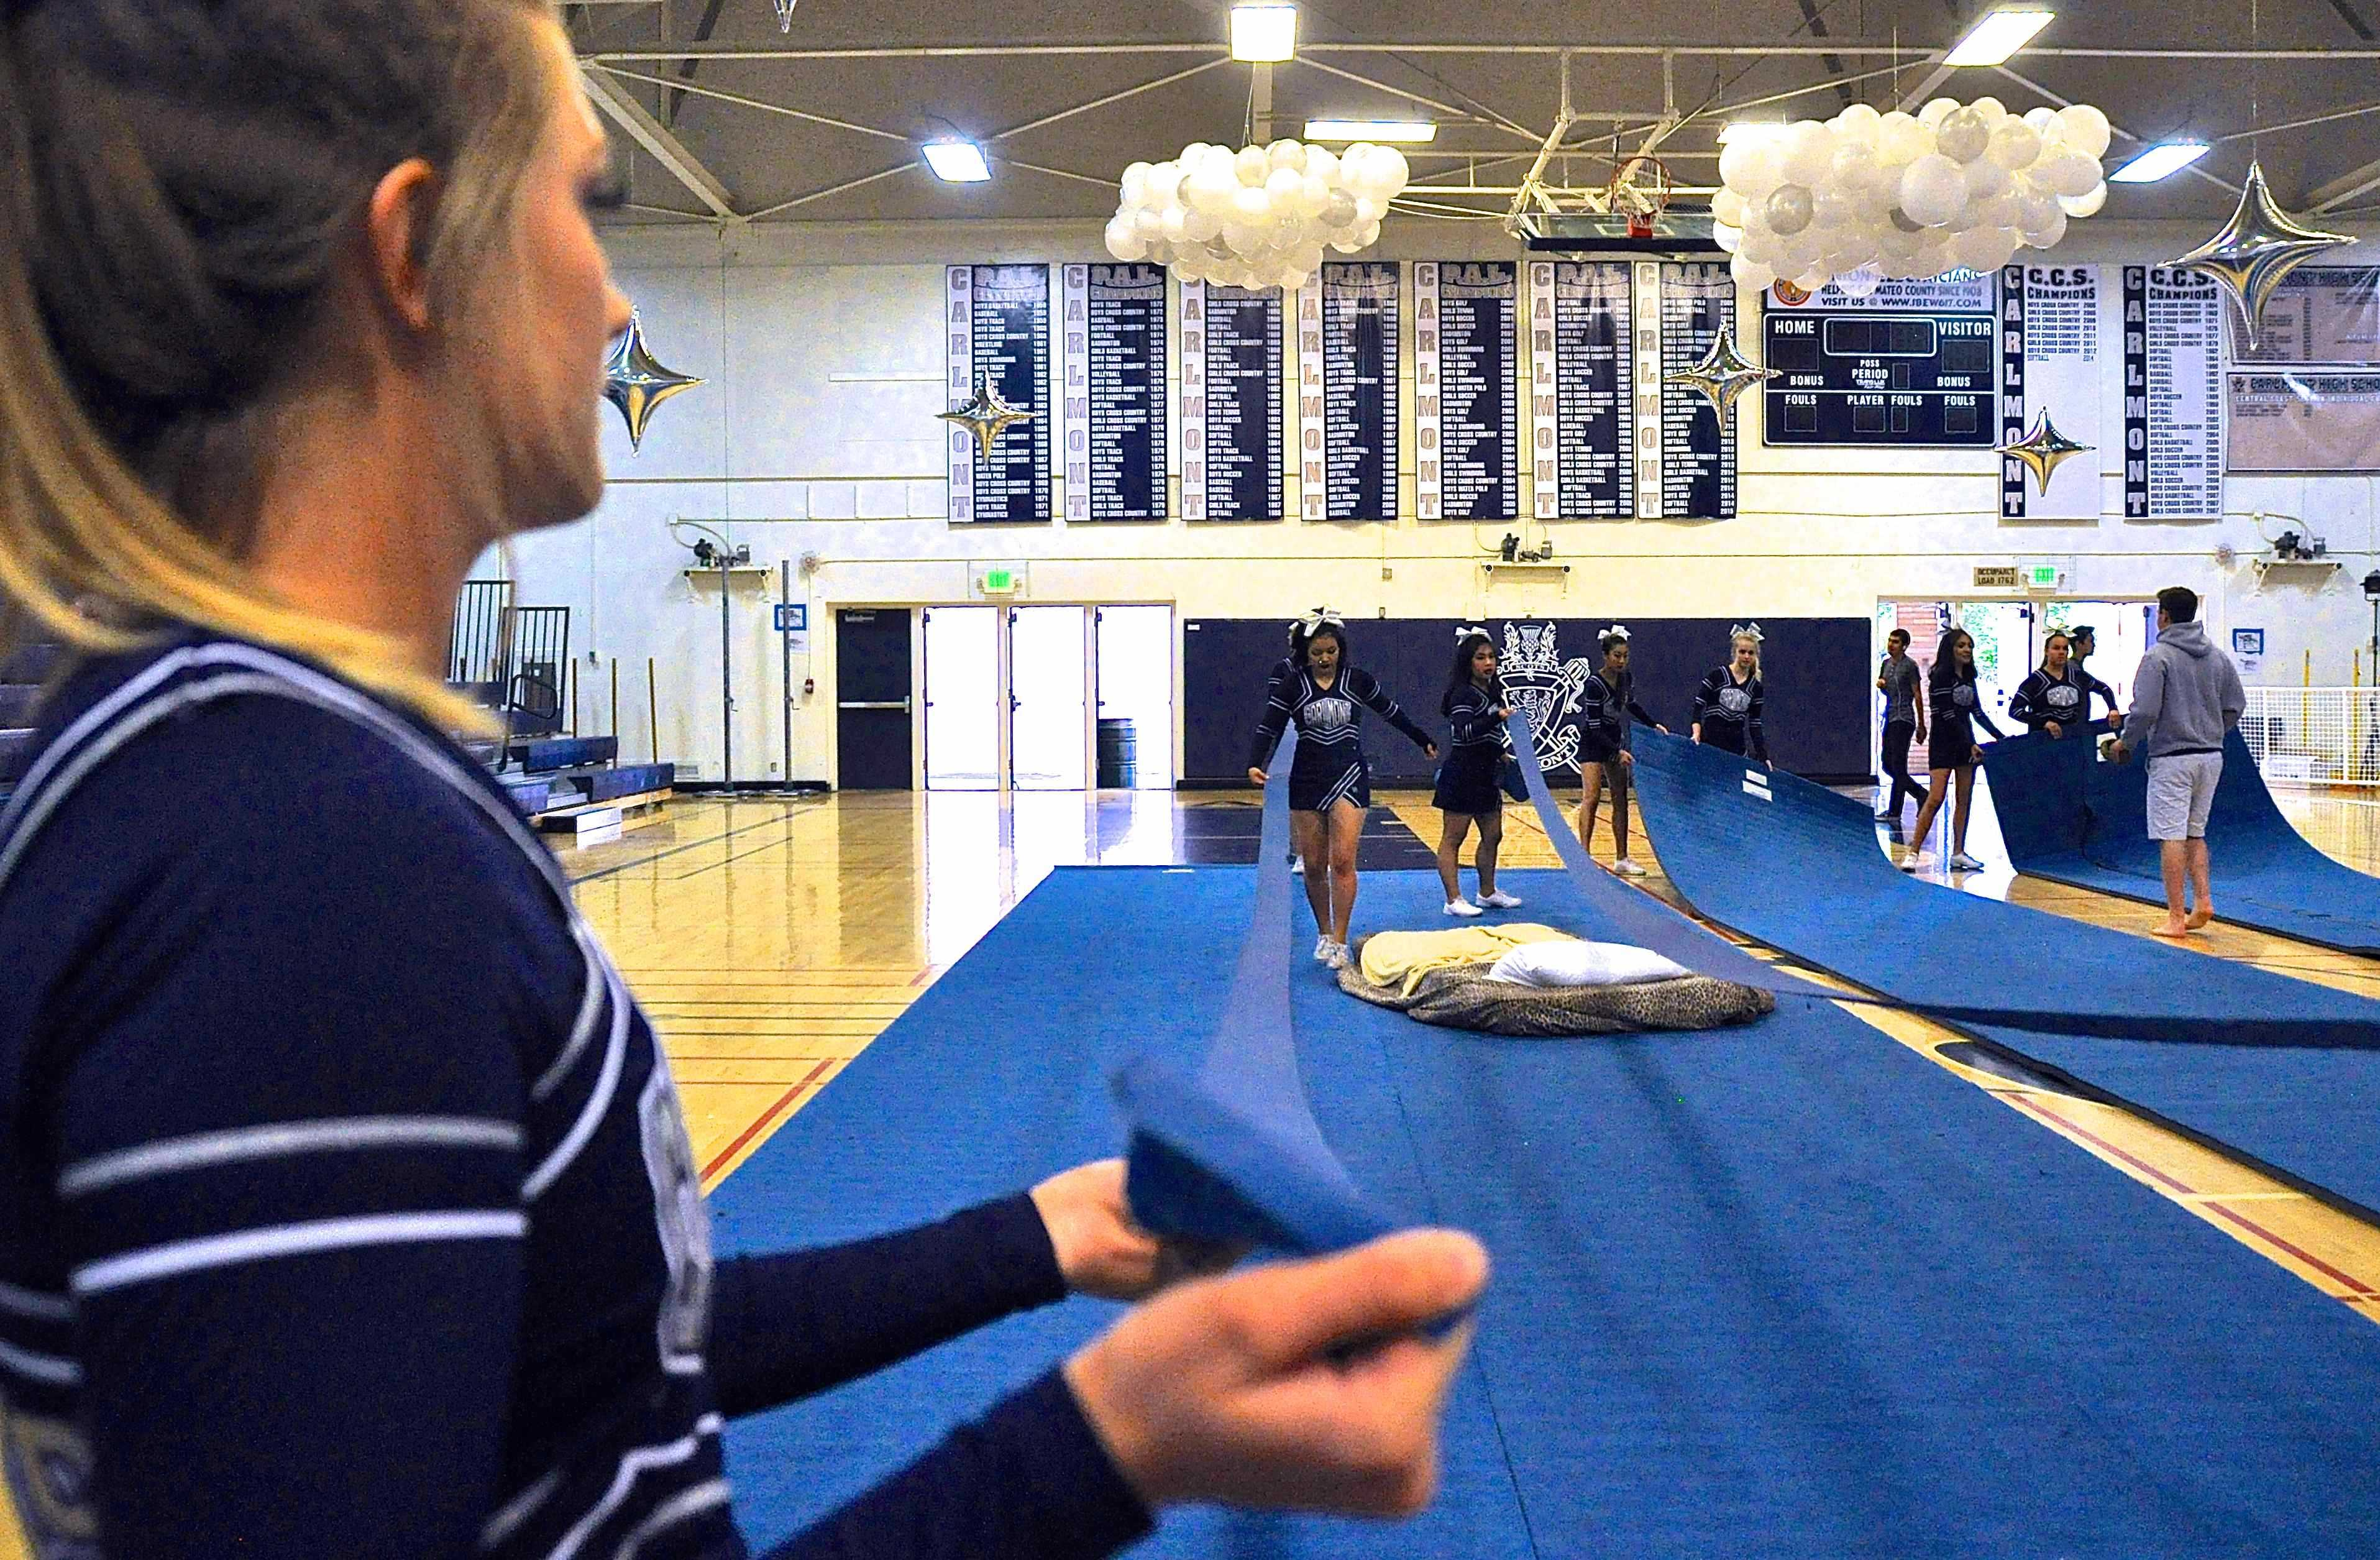 Carlmont%27s+Cheer+team+prepares+the+gym+for+their+tumbling+routine.+